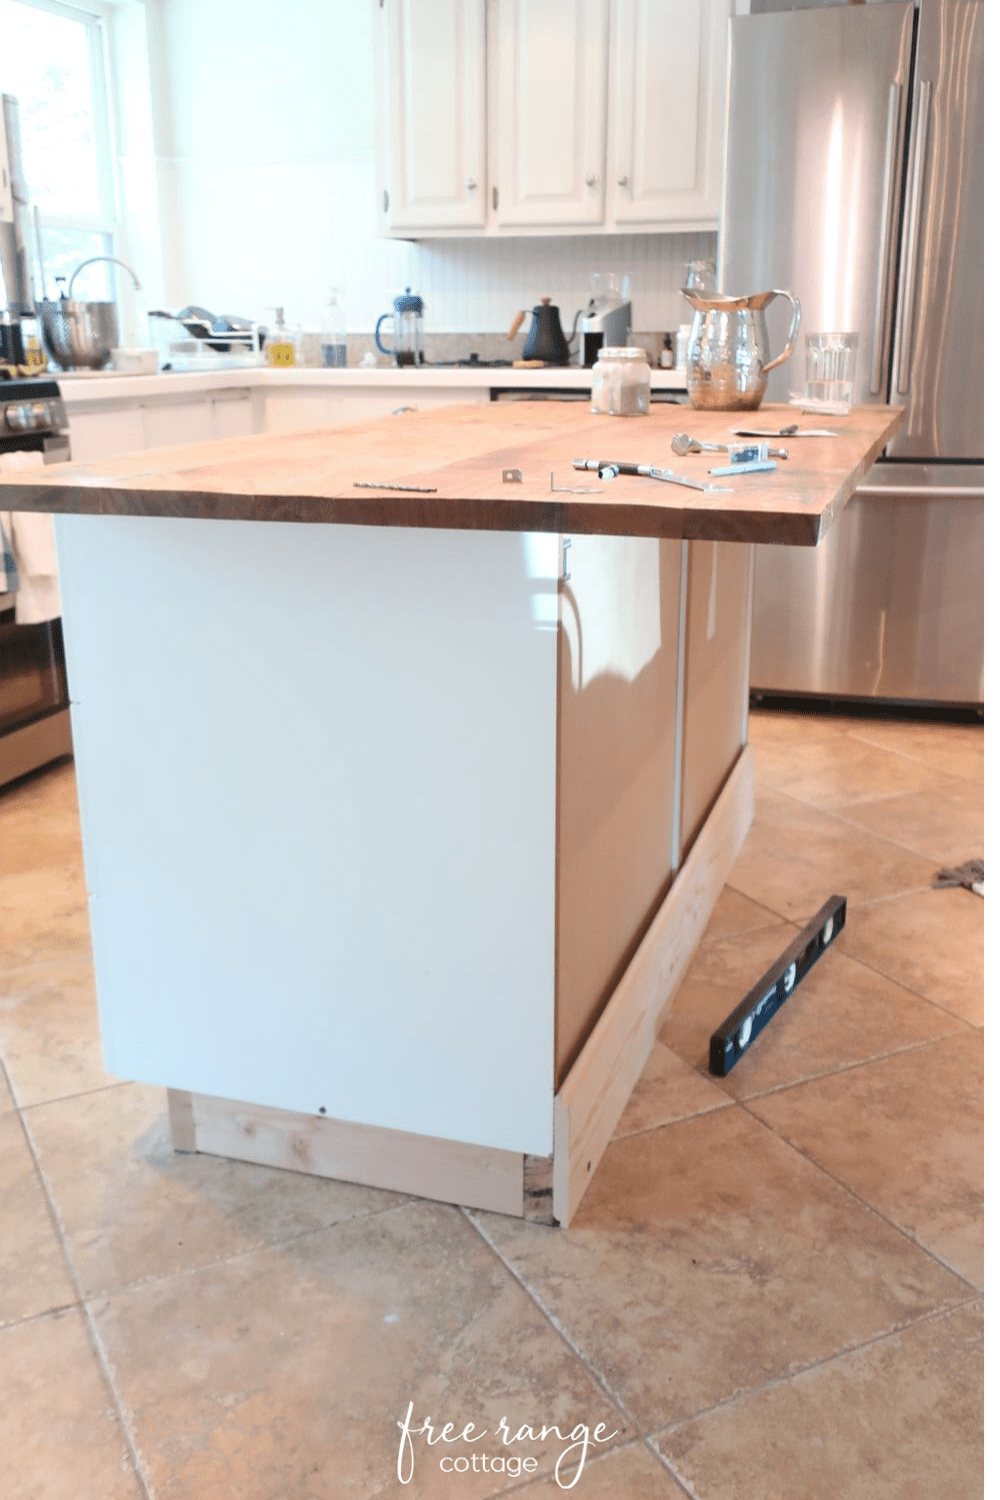 Ikea Diy Kitchen Island With Thrifted Counter Top Free Range Cottage In 2020 Diy Kitchen Island Kitchen Peninsula Diy Ikea Kitchen Island